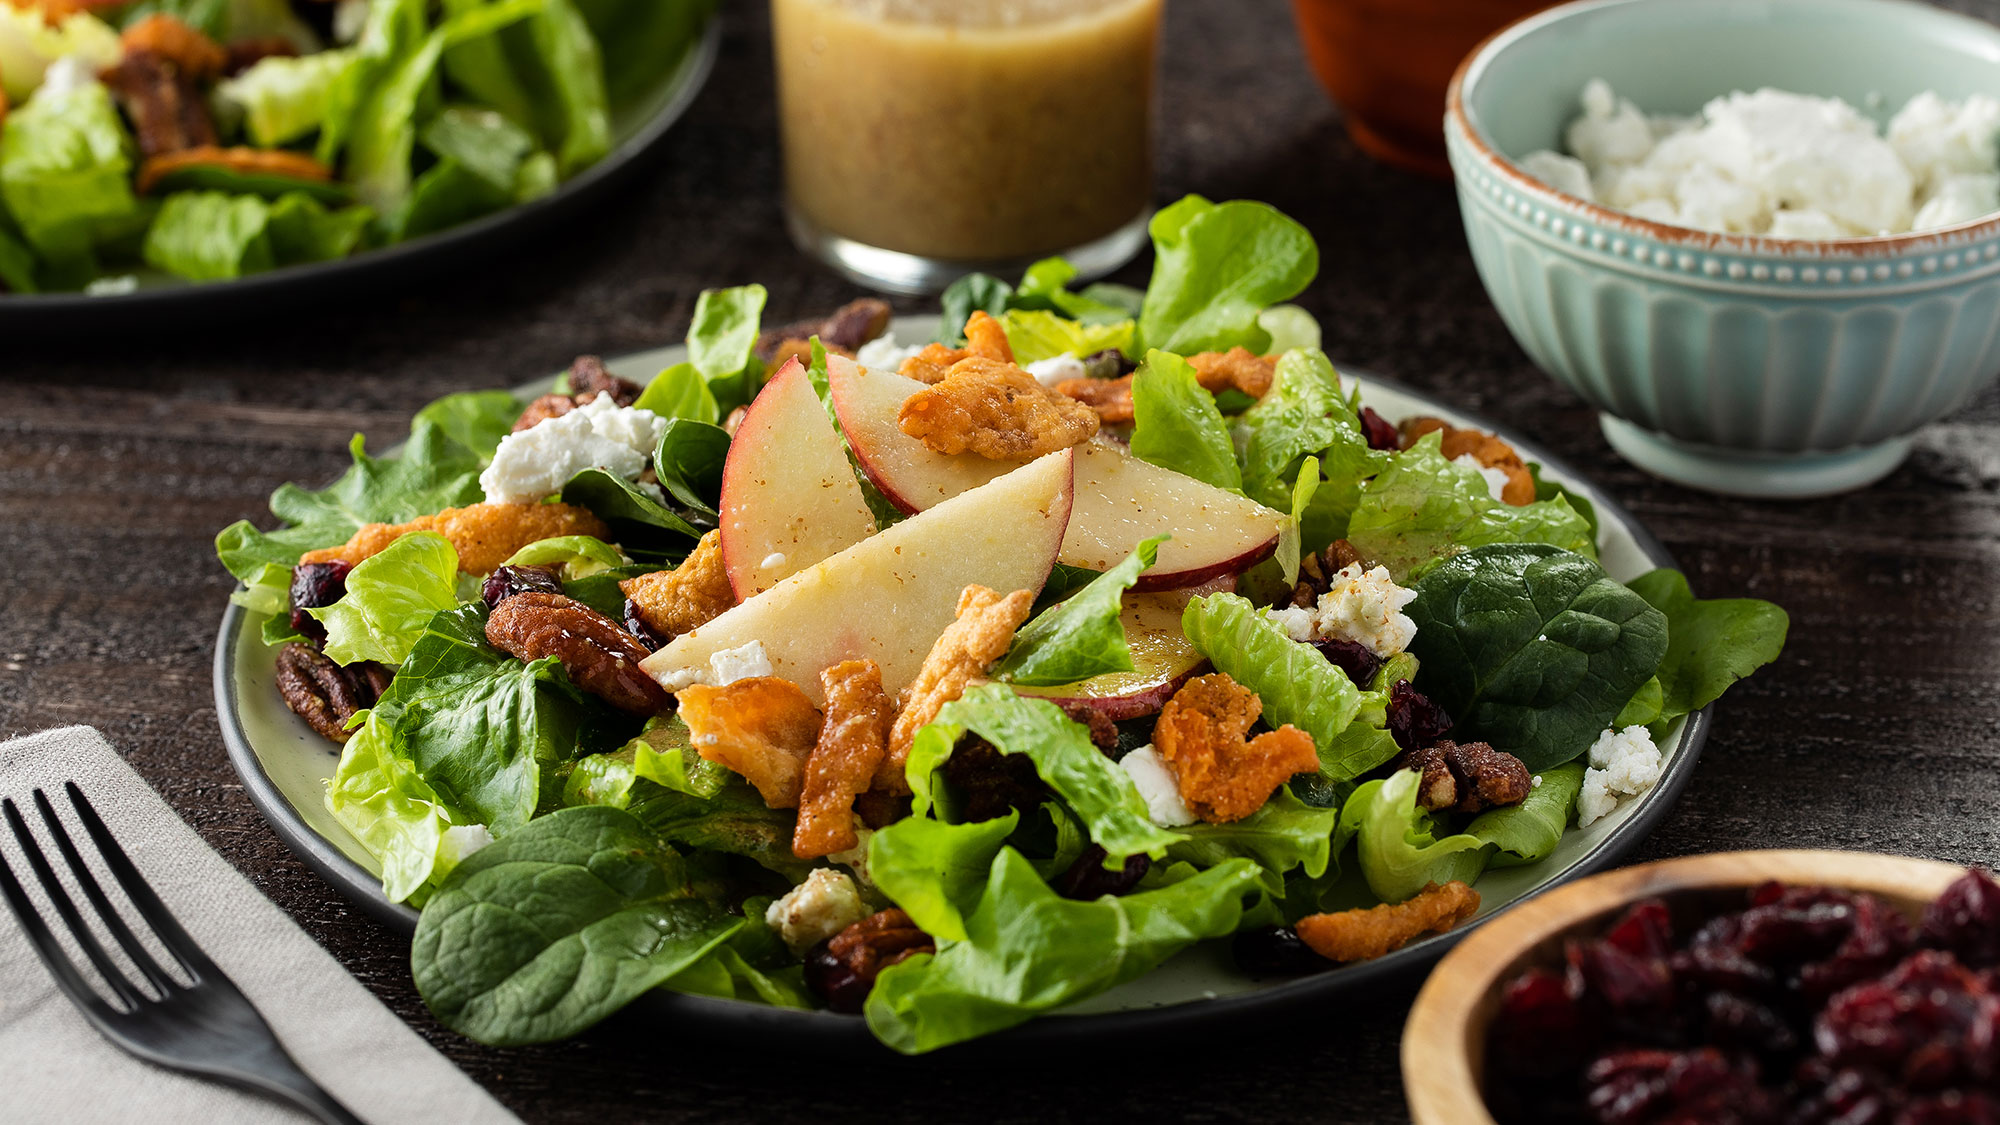 Harvest-Salad-with-Sweet-Dijon-Vinaigrette-2000x1125.jpg